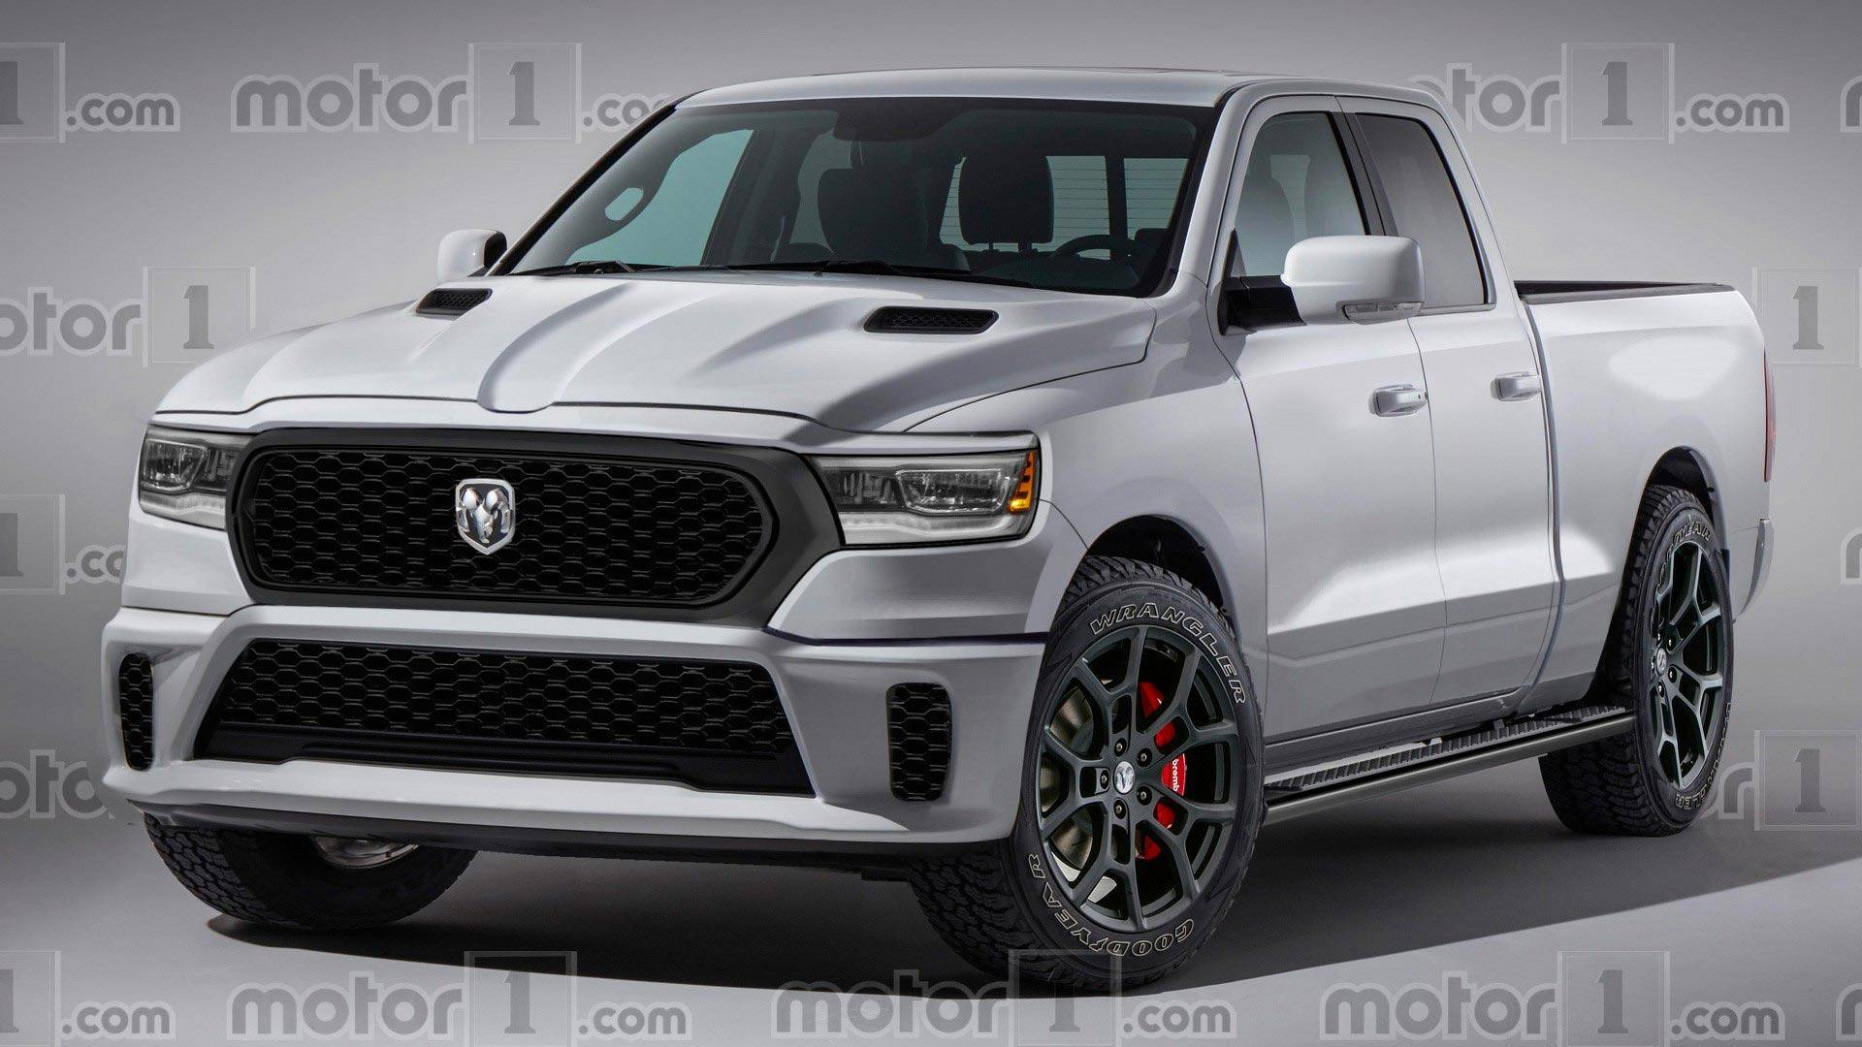 Ram Rebel TRX To Pack 4 HP, Rebel TR Coming With 4 HP | 2020 Dodge Ram Concept